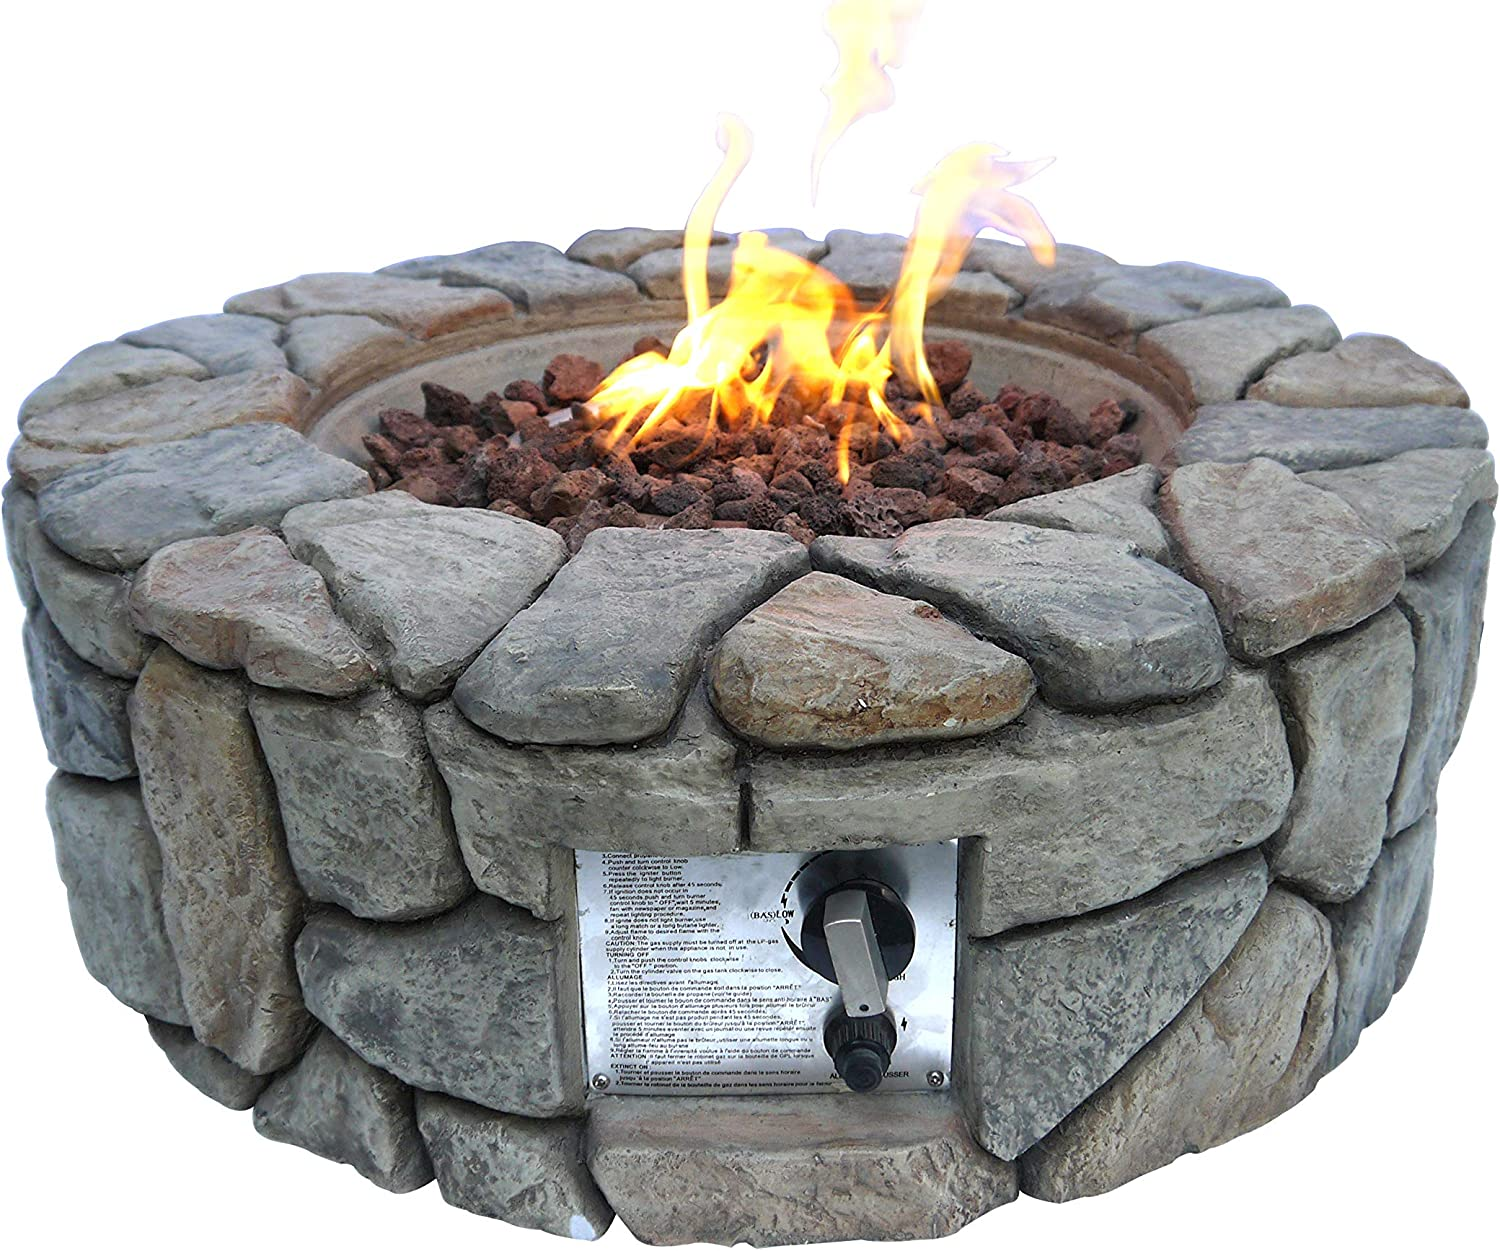 Amazon Com Peaktop Hf09501aa Round 40 000 Btu Propane Gas Fire Pit Stone Look For Outdoor Patio Garden Backyard Decking With Pvc Cover Lava Rock 28 X 28 Gray Garden Outdoor